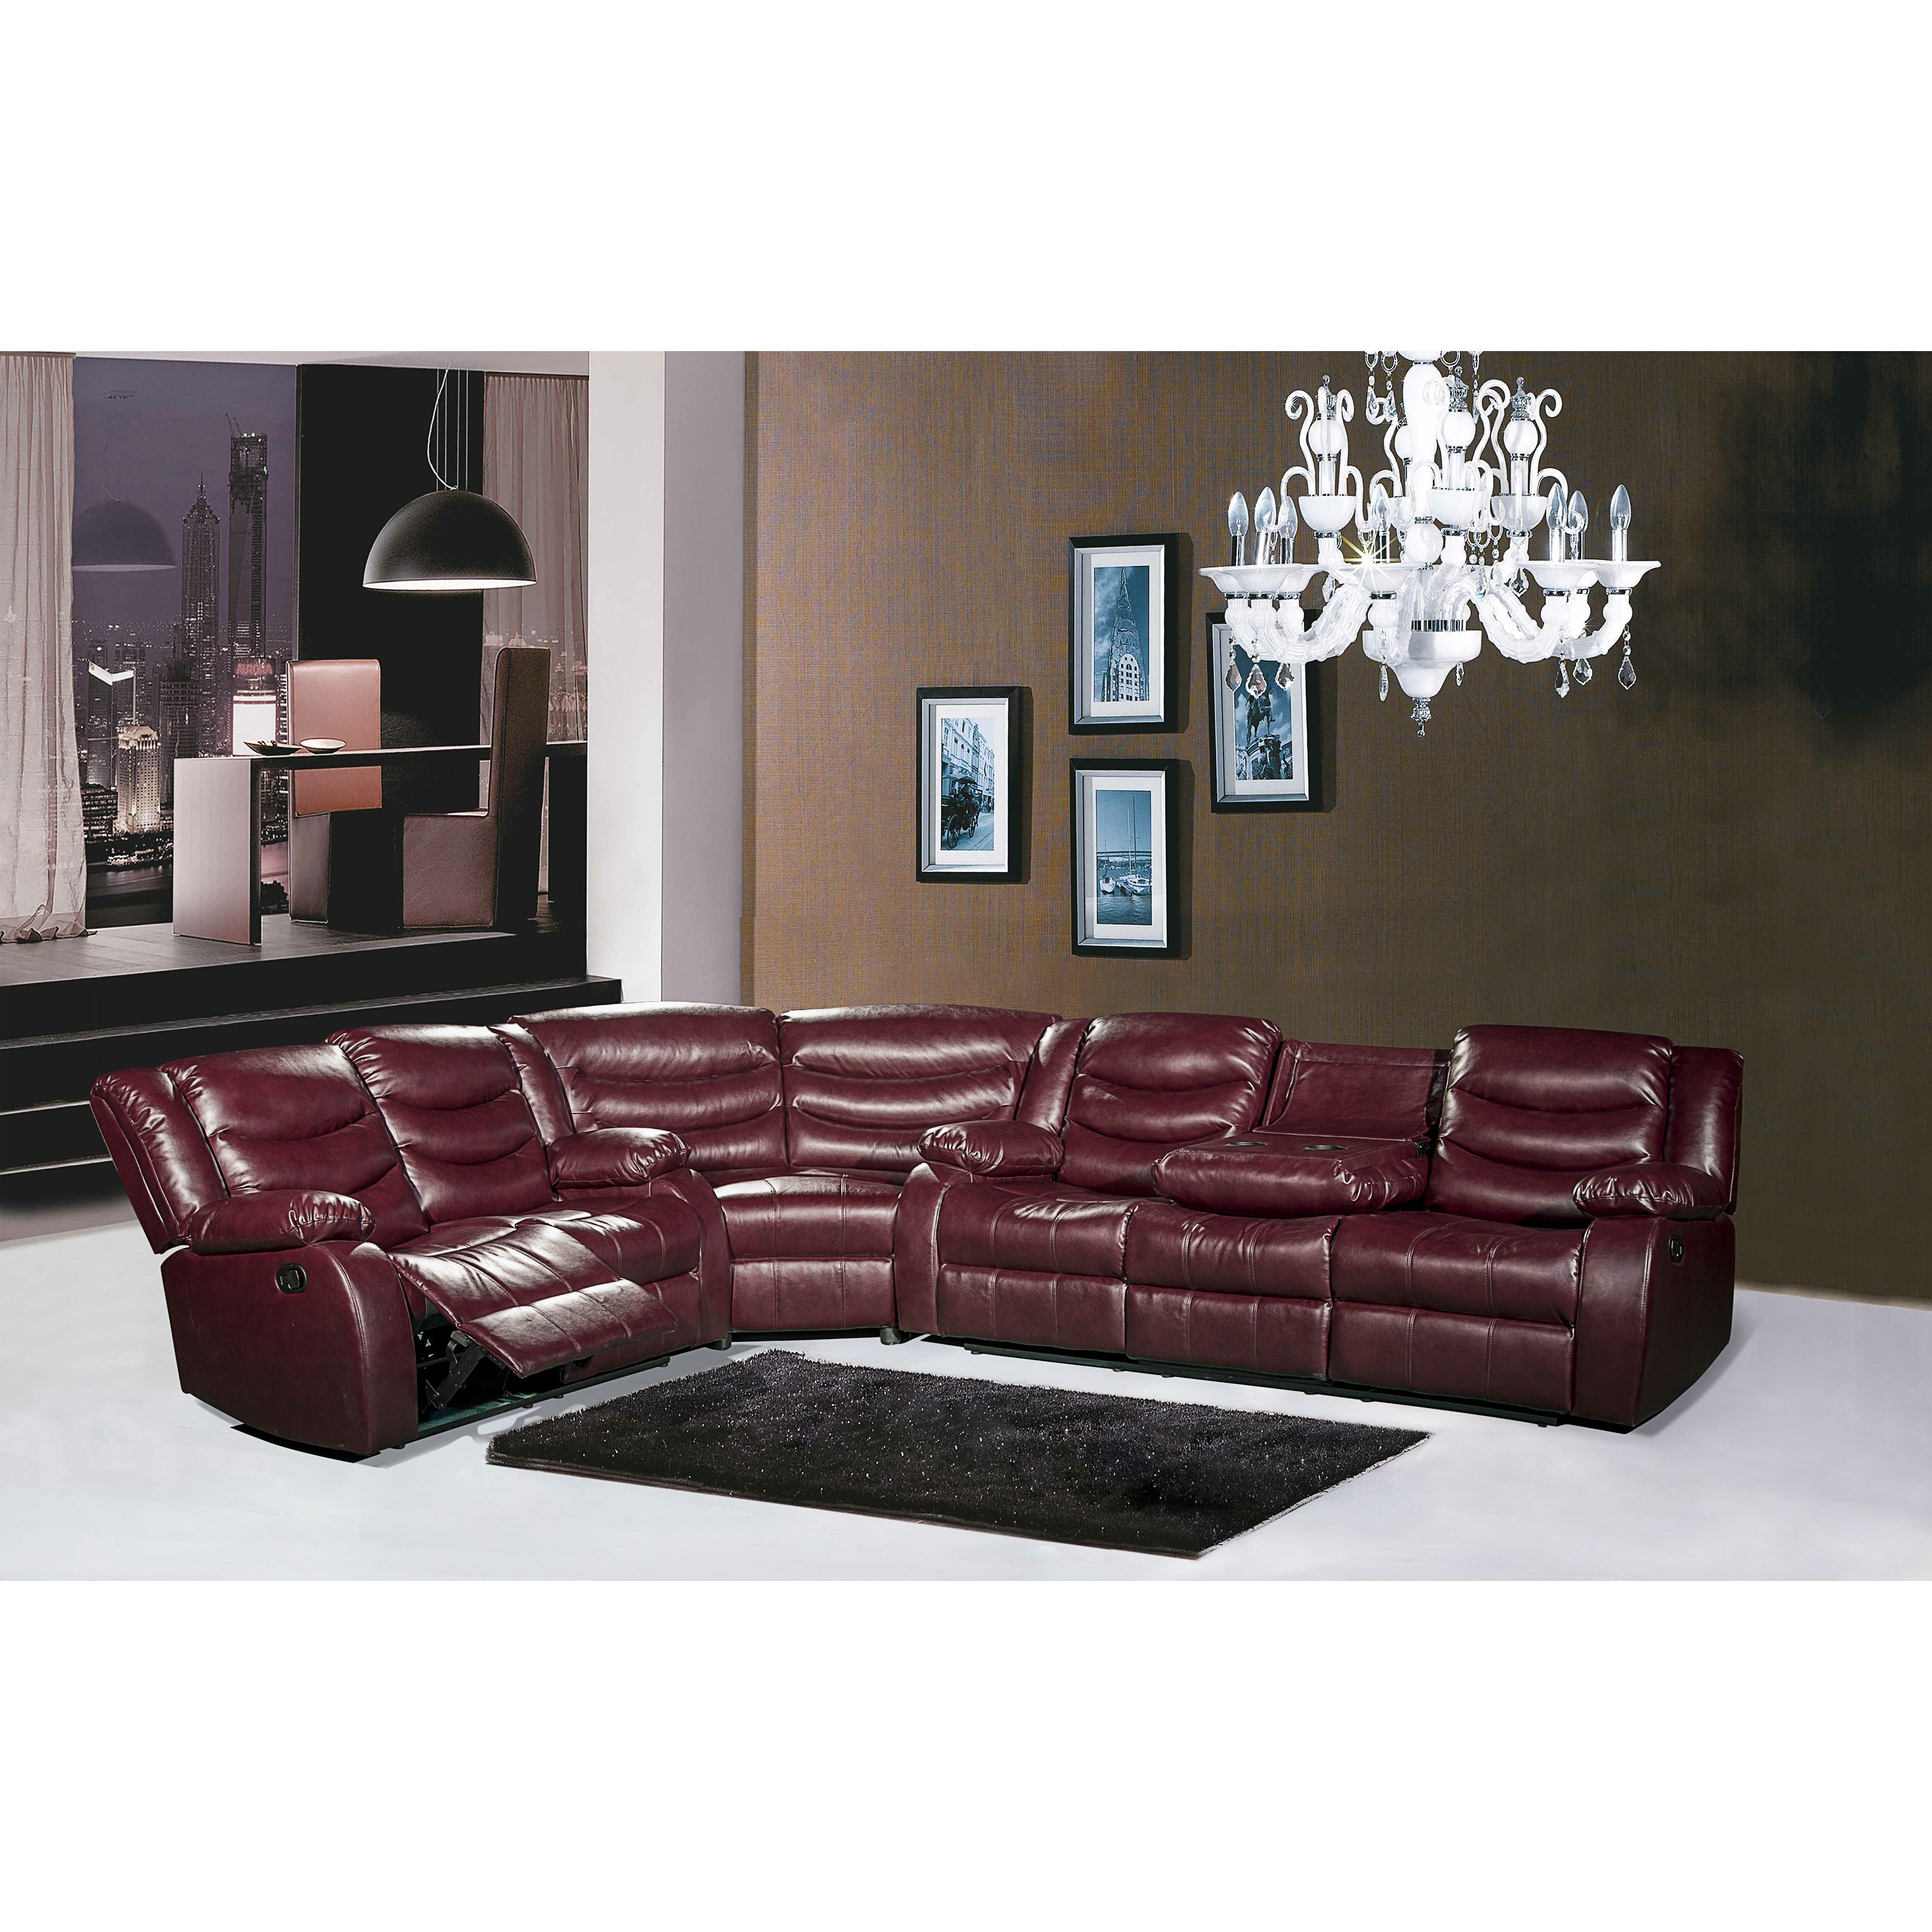 meridian gramercy leather reclining sectional sofa products rh pinterest com au